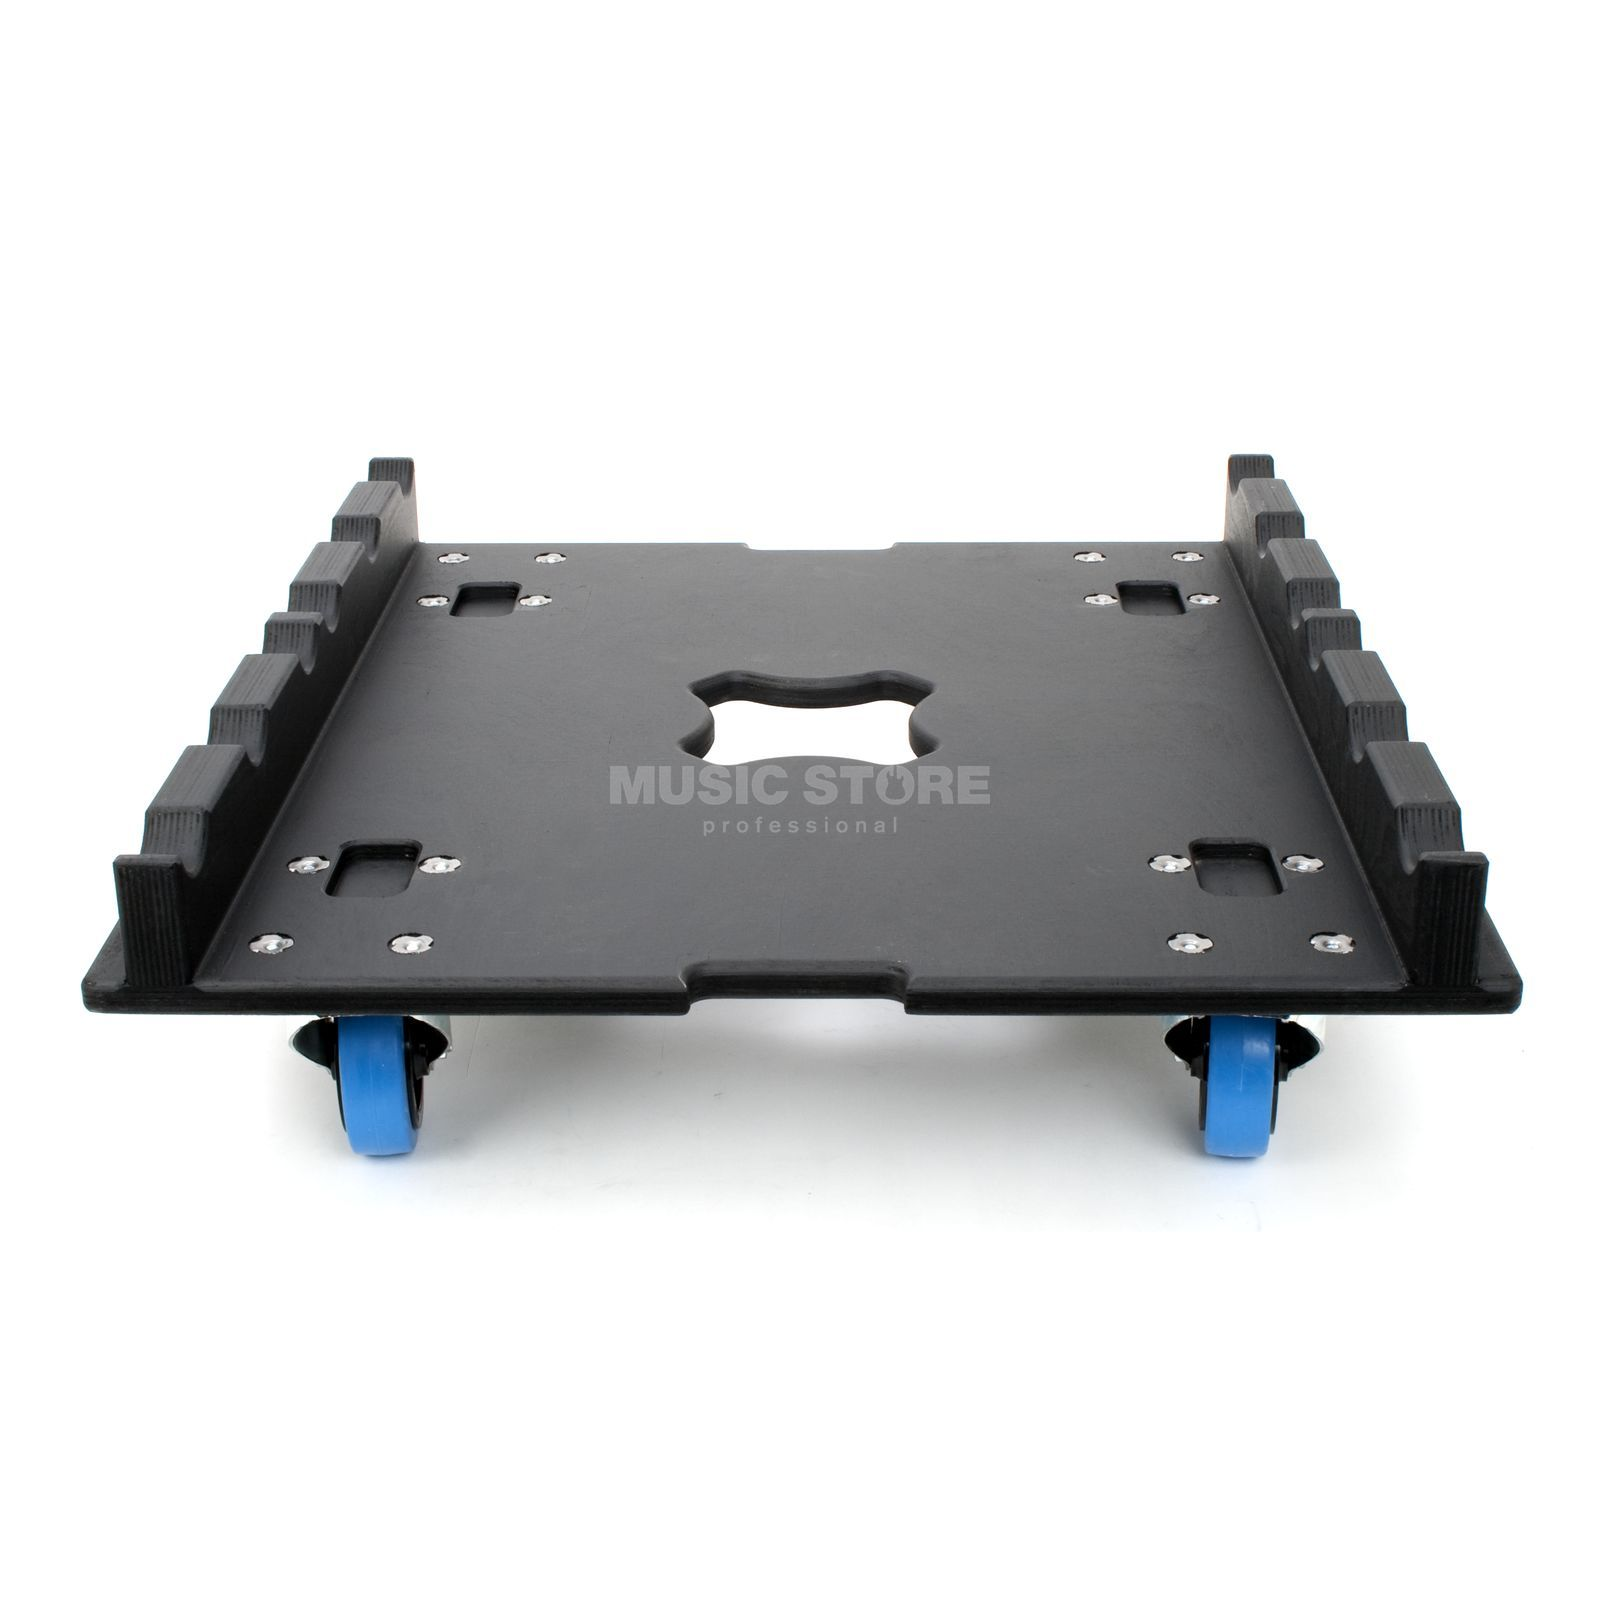 lightmaXX Truss wheel board 600 x 600 100mm wheels, blue Produktbillede